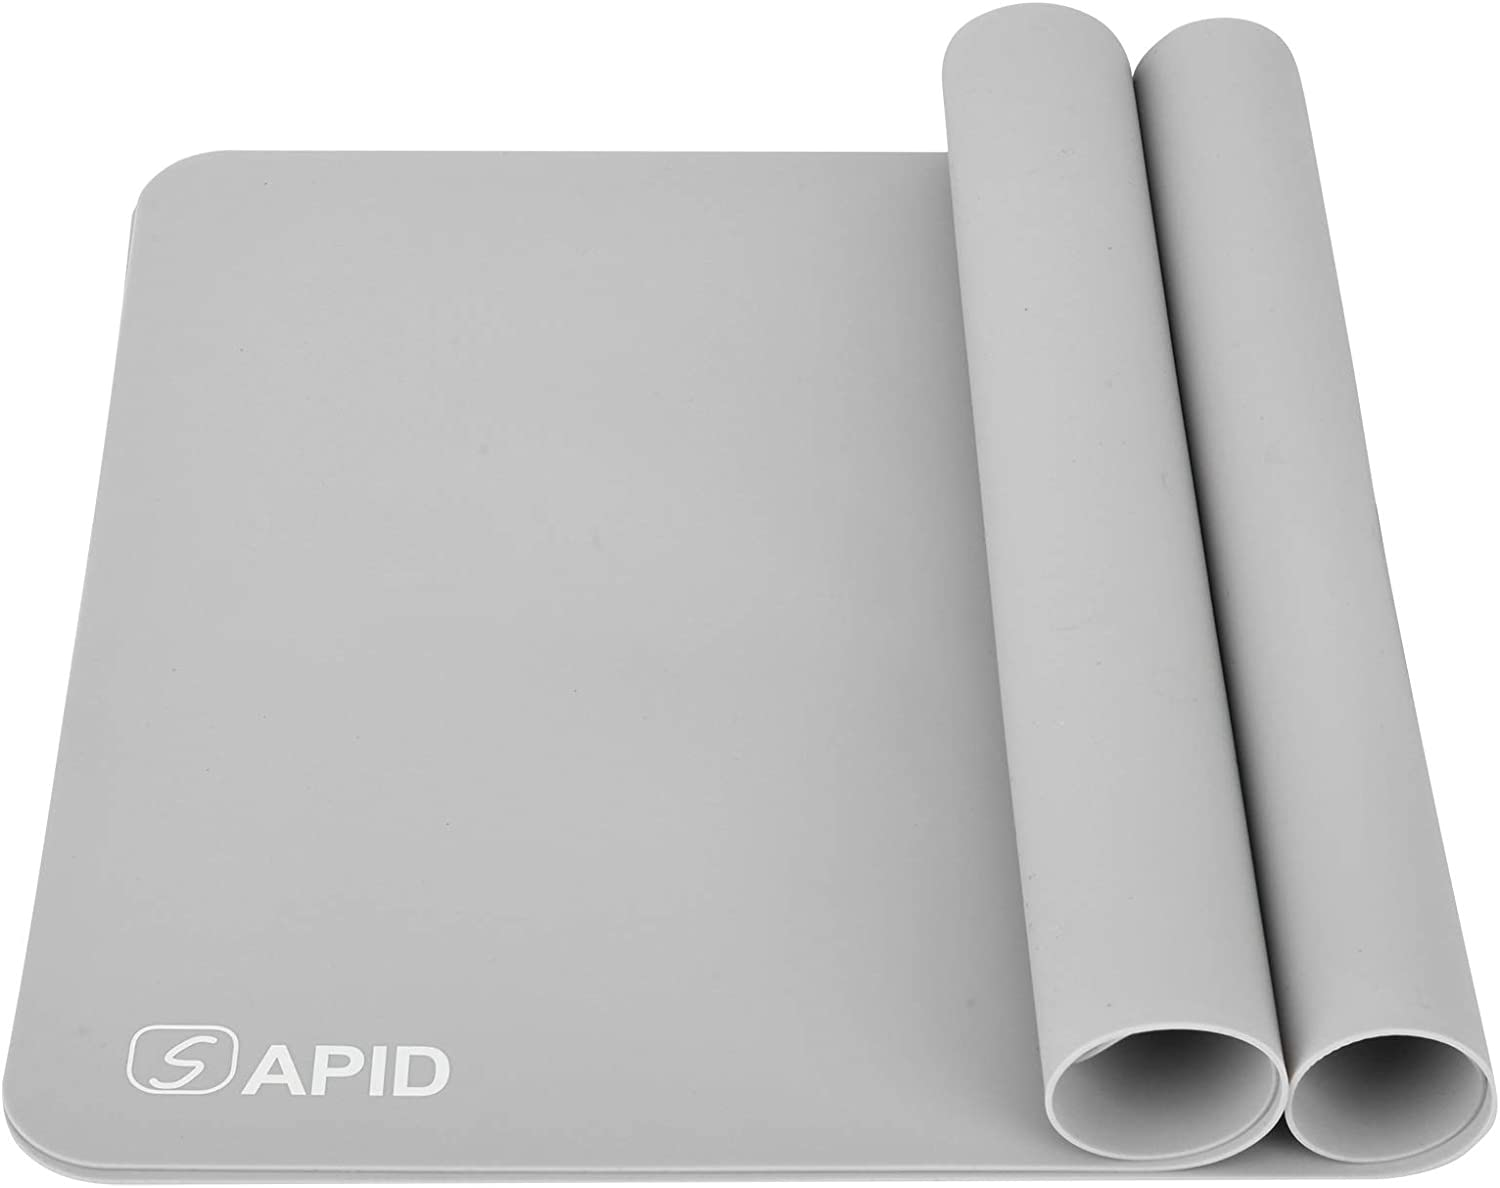 Sapid 2Pcs Thick Silicone Mat for Crafts(15.7